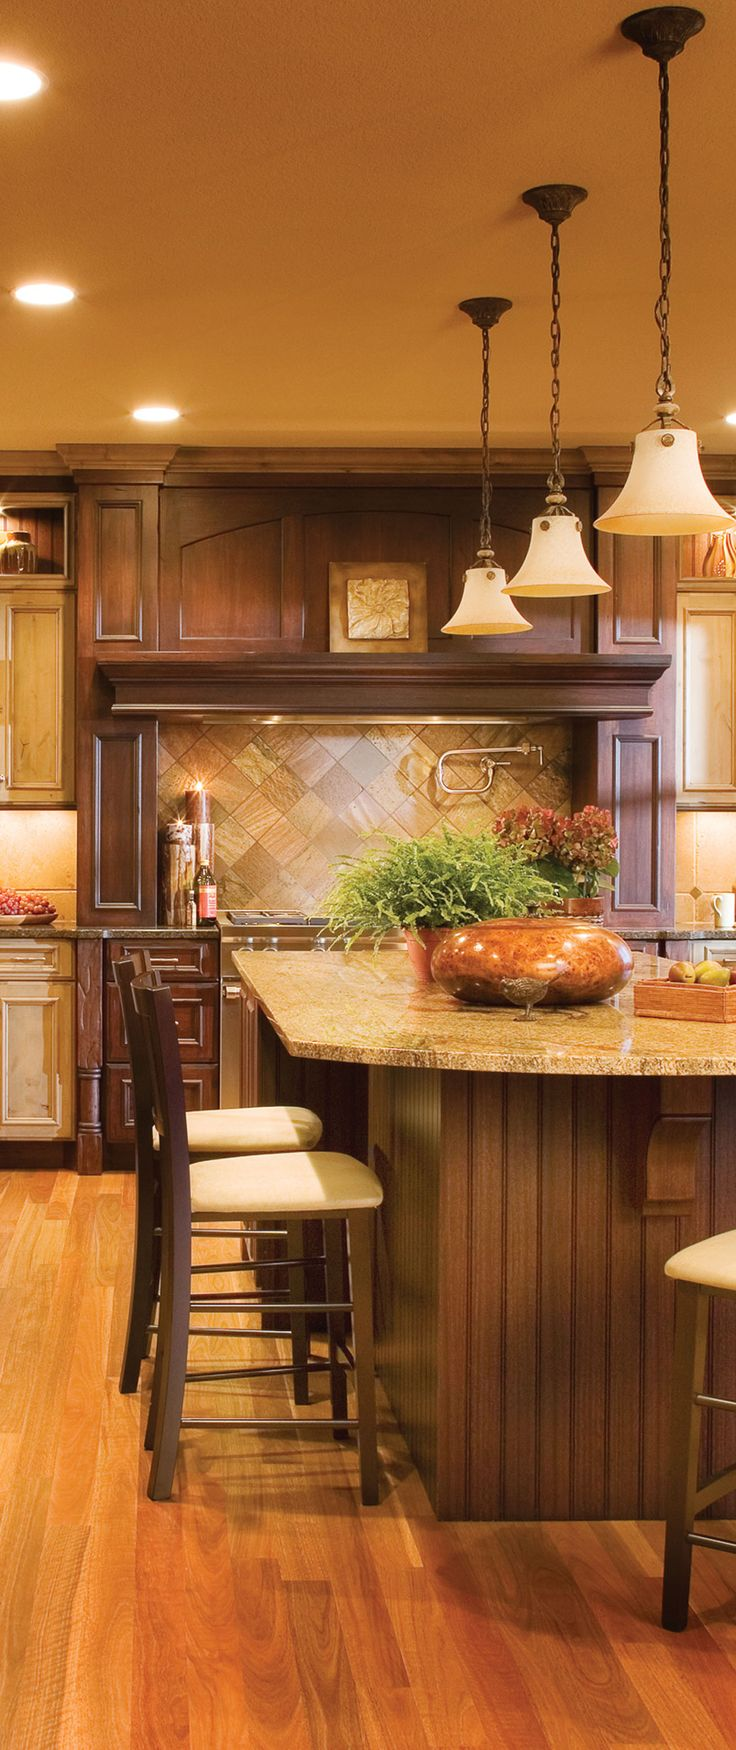 Best 25+ Tan kitchen ideas on Pinterest | Tan kitchen walls, Tan kitchen  cabinets and Granite countertops colors